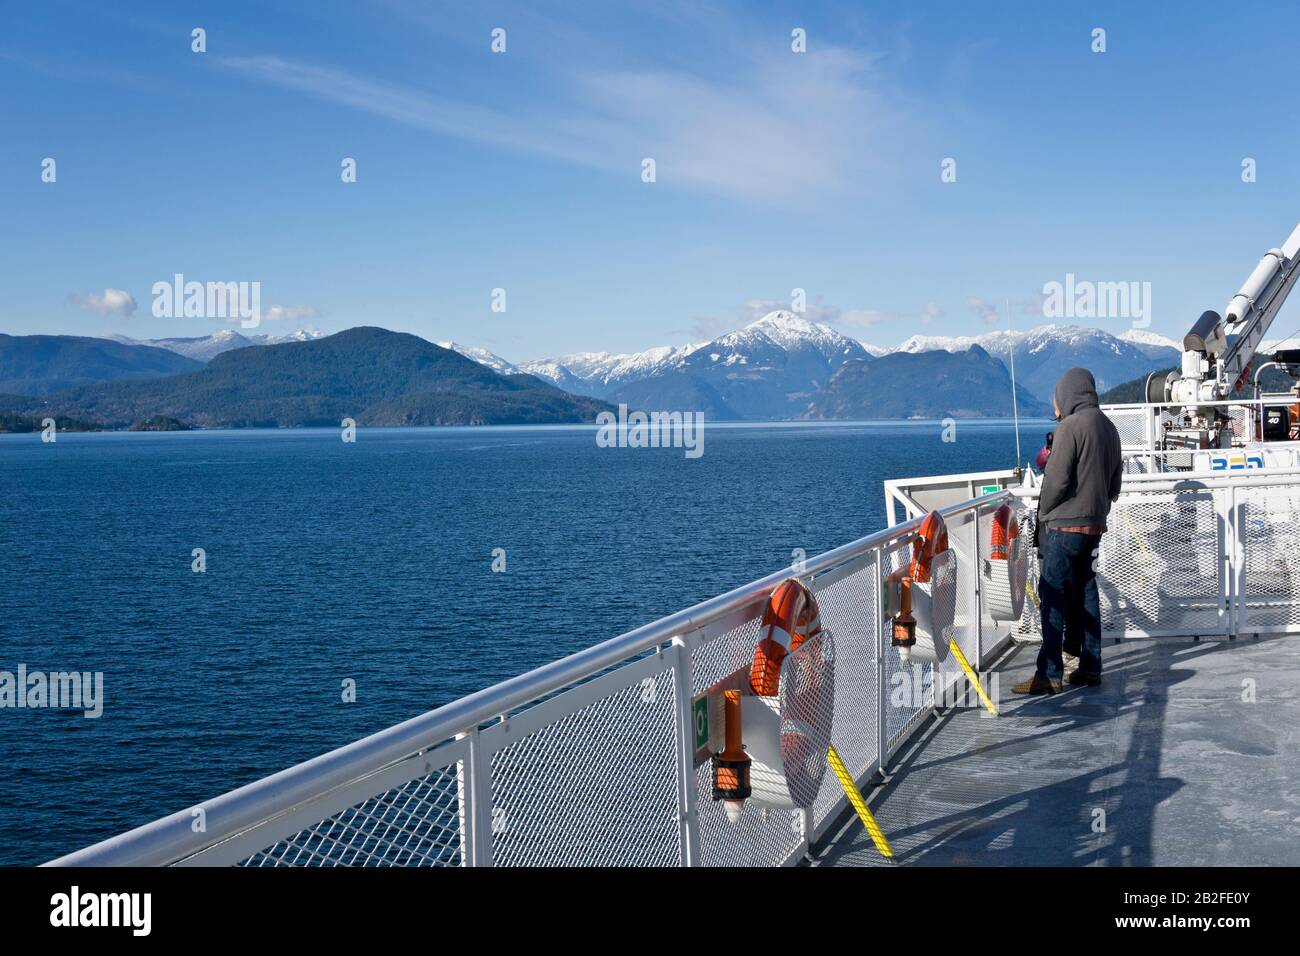 View from a BC Ferry traveling to the Sunshine Coast of British Columbia in the Winter.  Beautiful water and mountain views on a BC ferry deck. Stock Photo